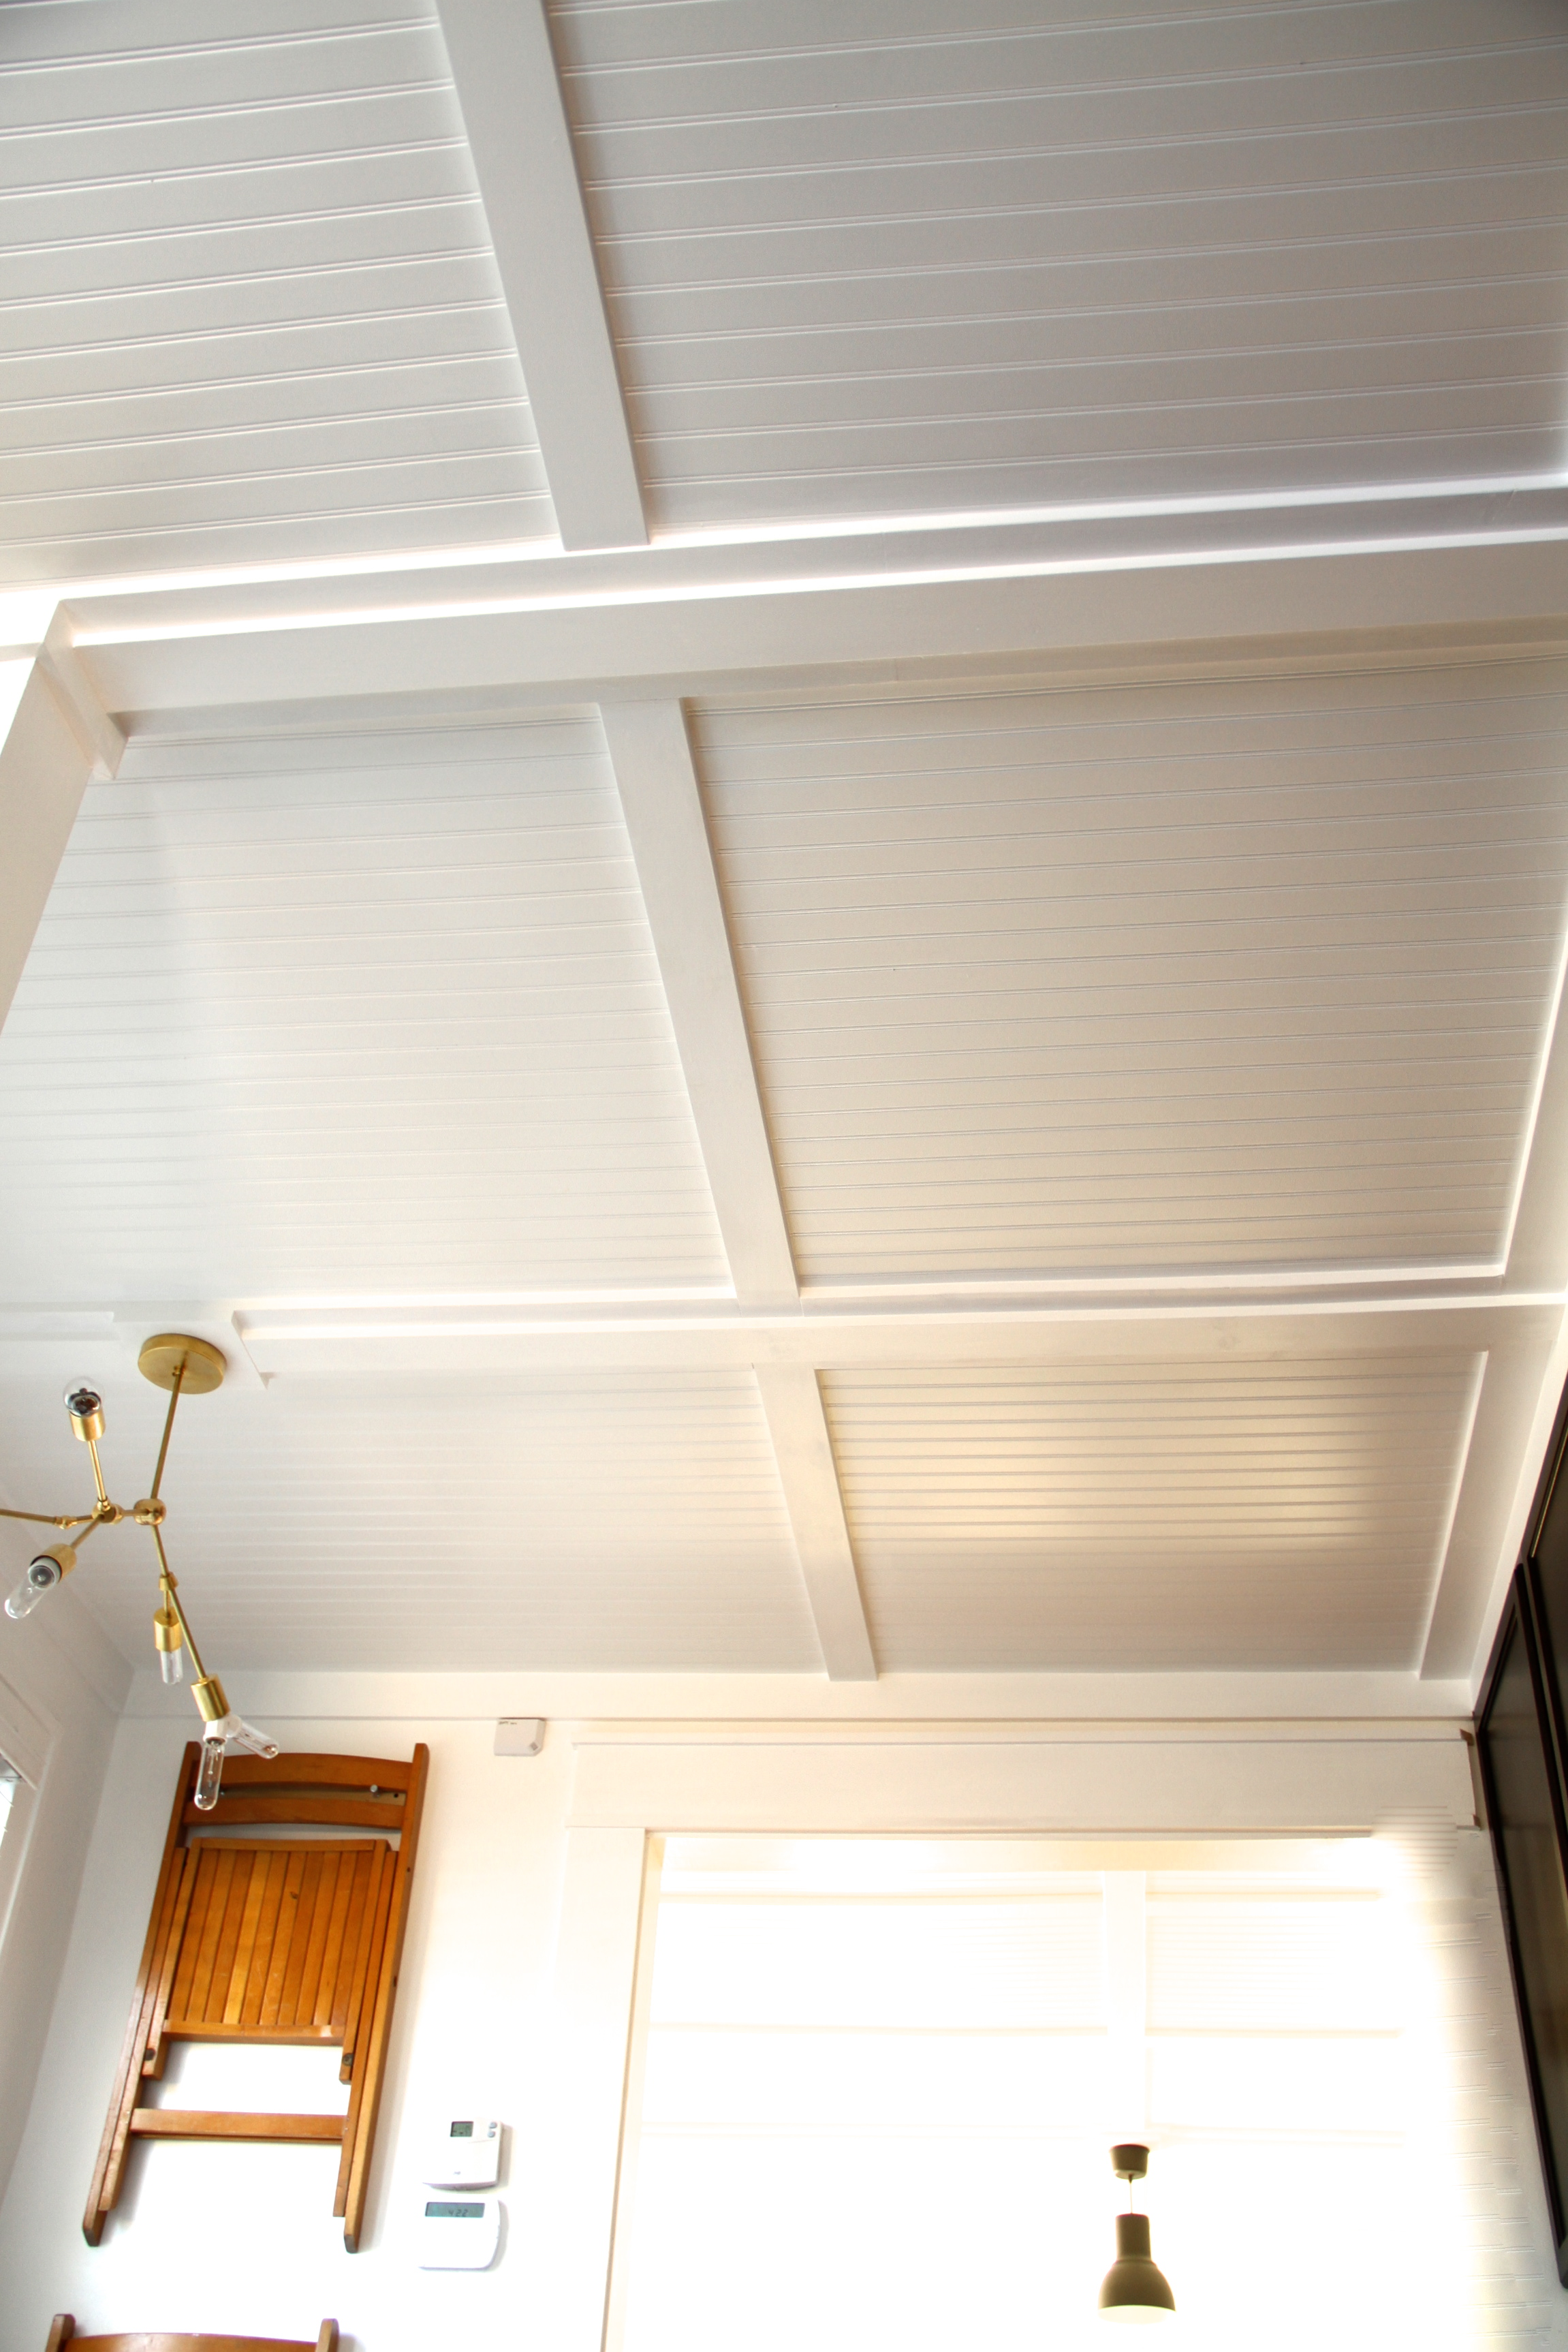 bathroom ceiling covering ideas - Apartment Therapy Beadboard Ceiling Follow Up